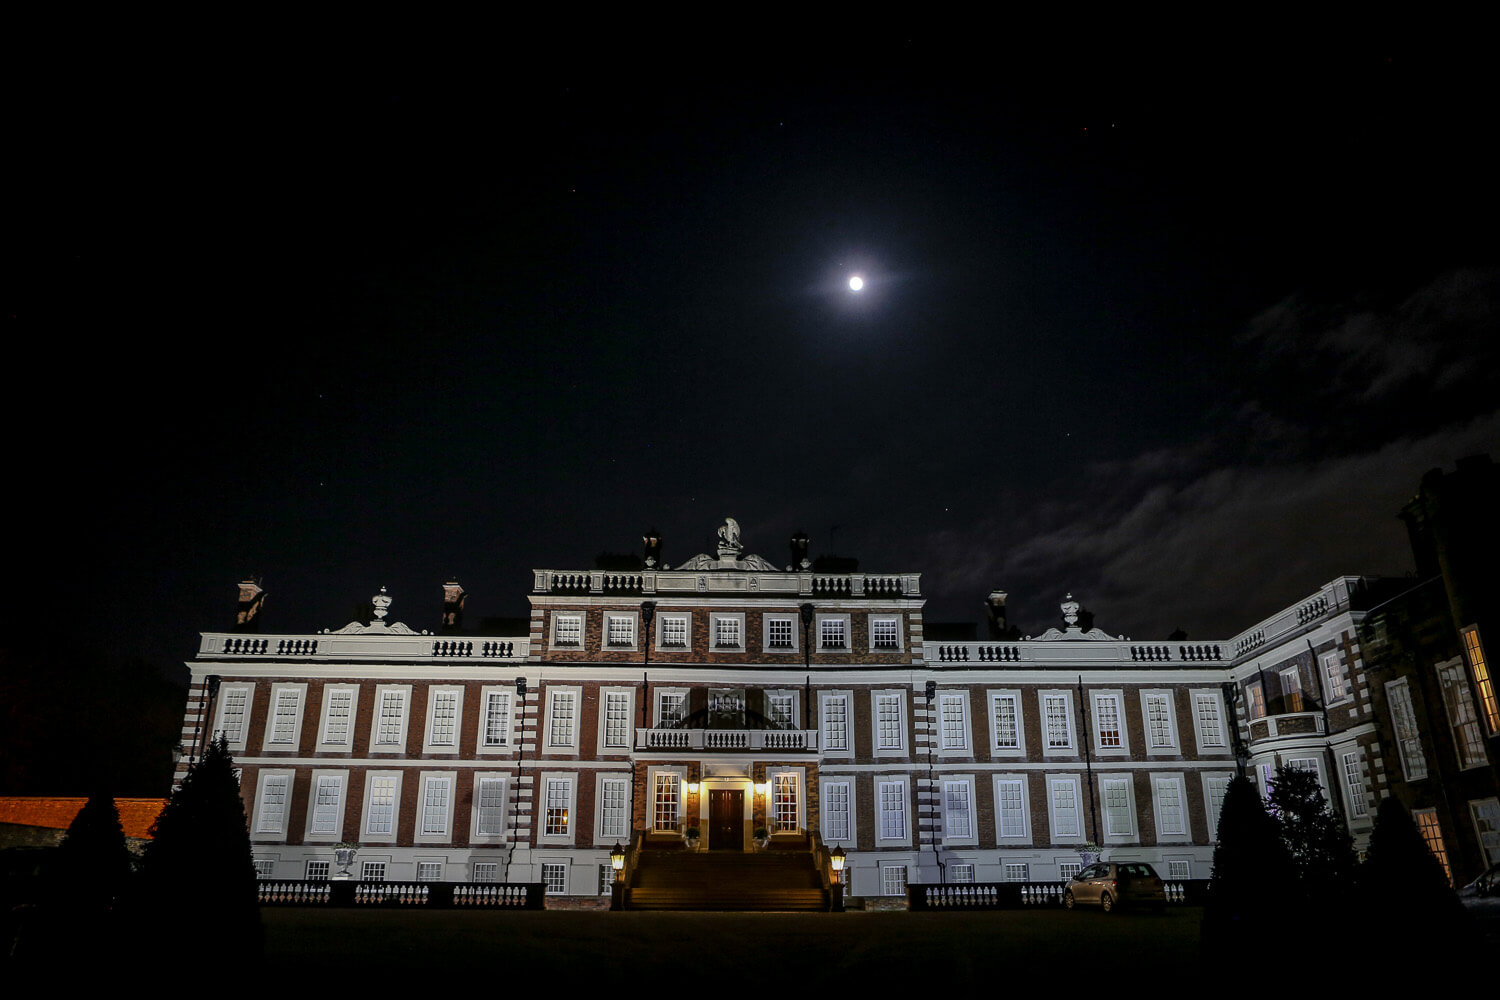 Knowsley Hall at night under moonlight